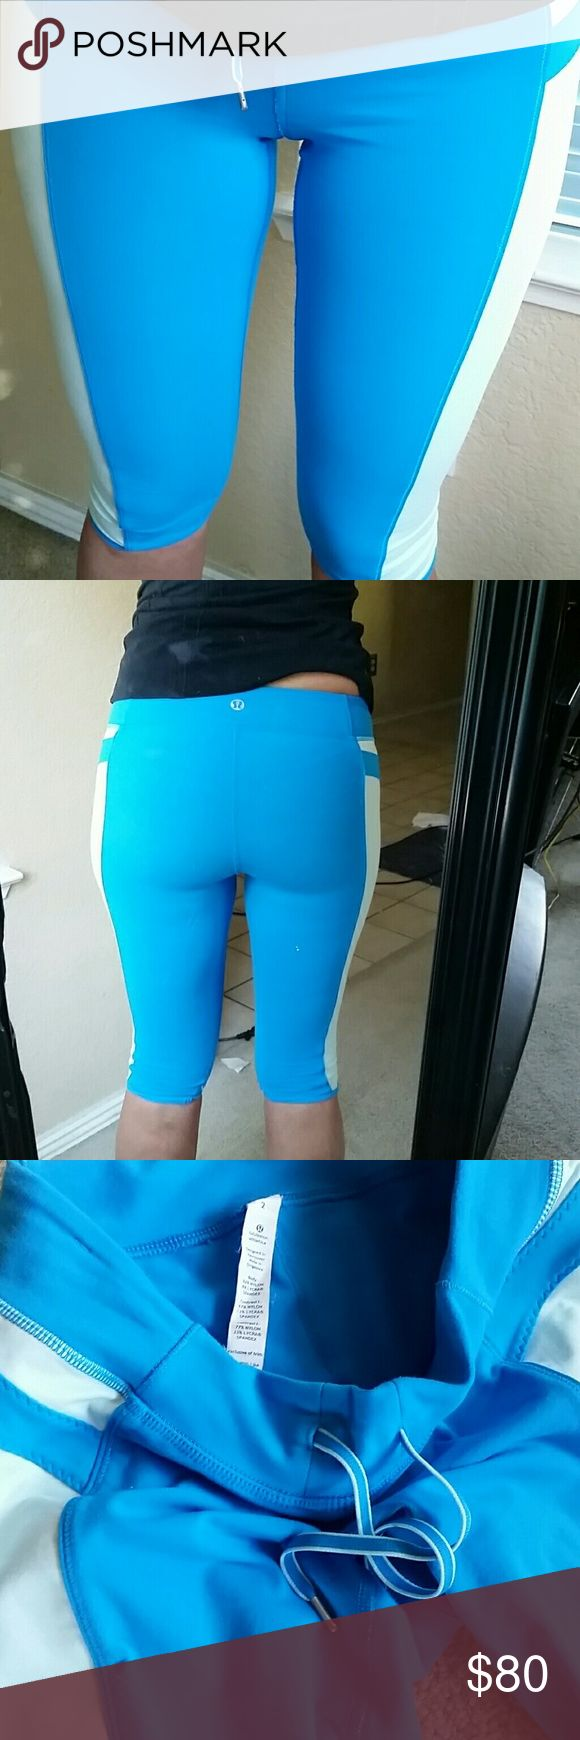 """NEW! Lululemon Seek the Heat Leggings Sz 2 NEW ARRIVAL THIS WEEK! Lululemon athletica blue & white seek the heat crops. I'm 5'3"""" and they're capri length on me (see pics). They've been worn but good condition overall. Just bought these but I prolly won't wear them bc  I mostly wear black leggings at the gym. Looking to sell, or trade for Lulu sz 2-4. Make an offer! lululemon athletica Pants Capris"""